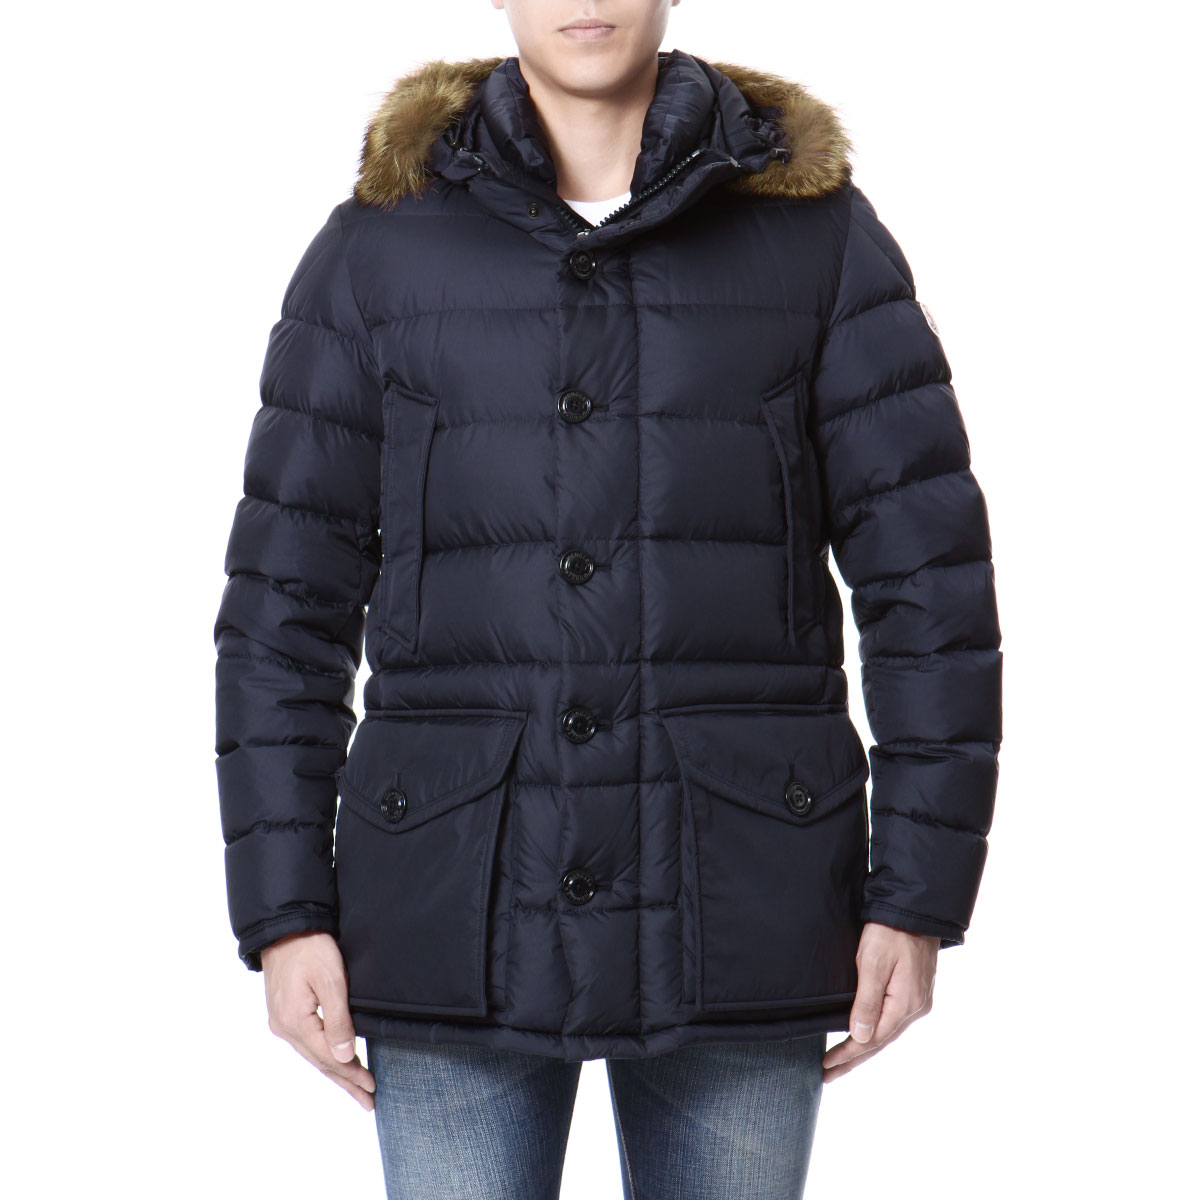 MONCLER MONCLER fur & Hooded down jacket NAVY dark blue CLUNY-Cluny